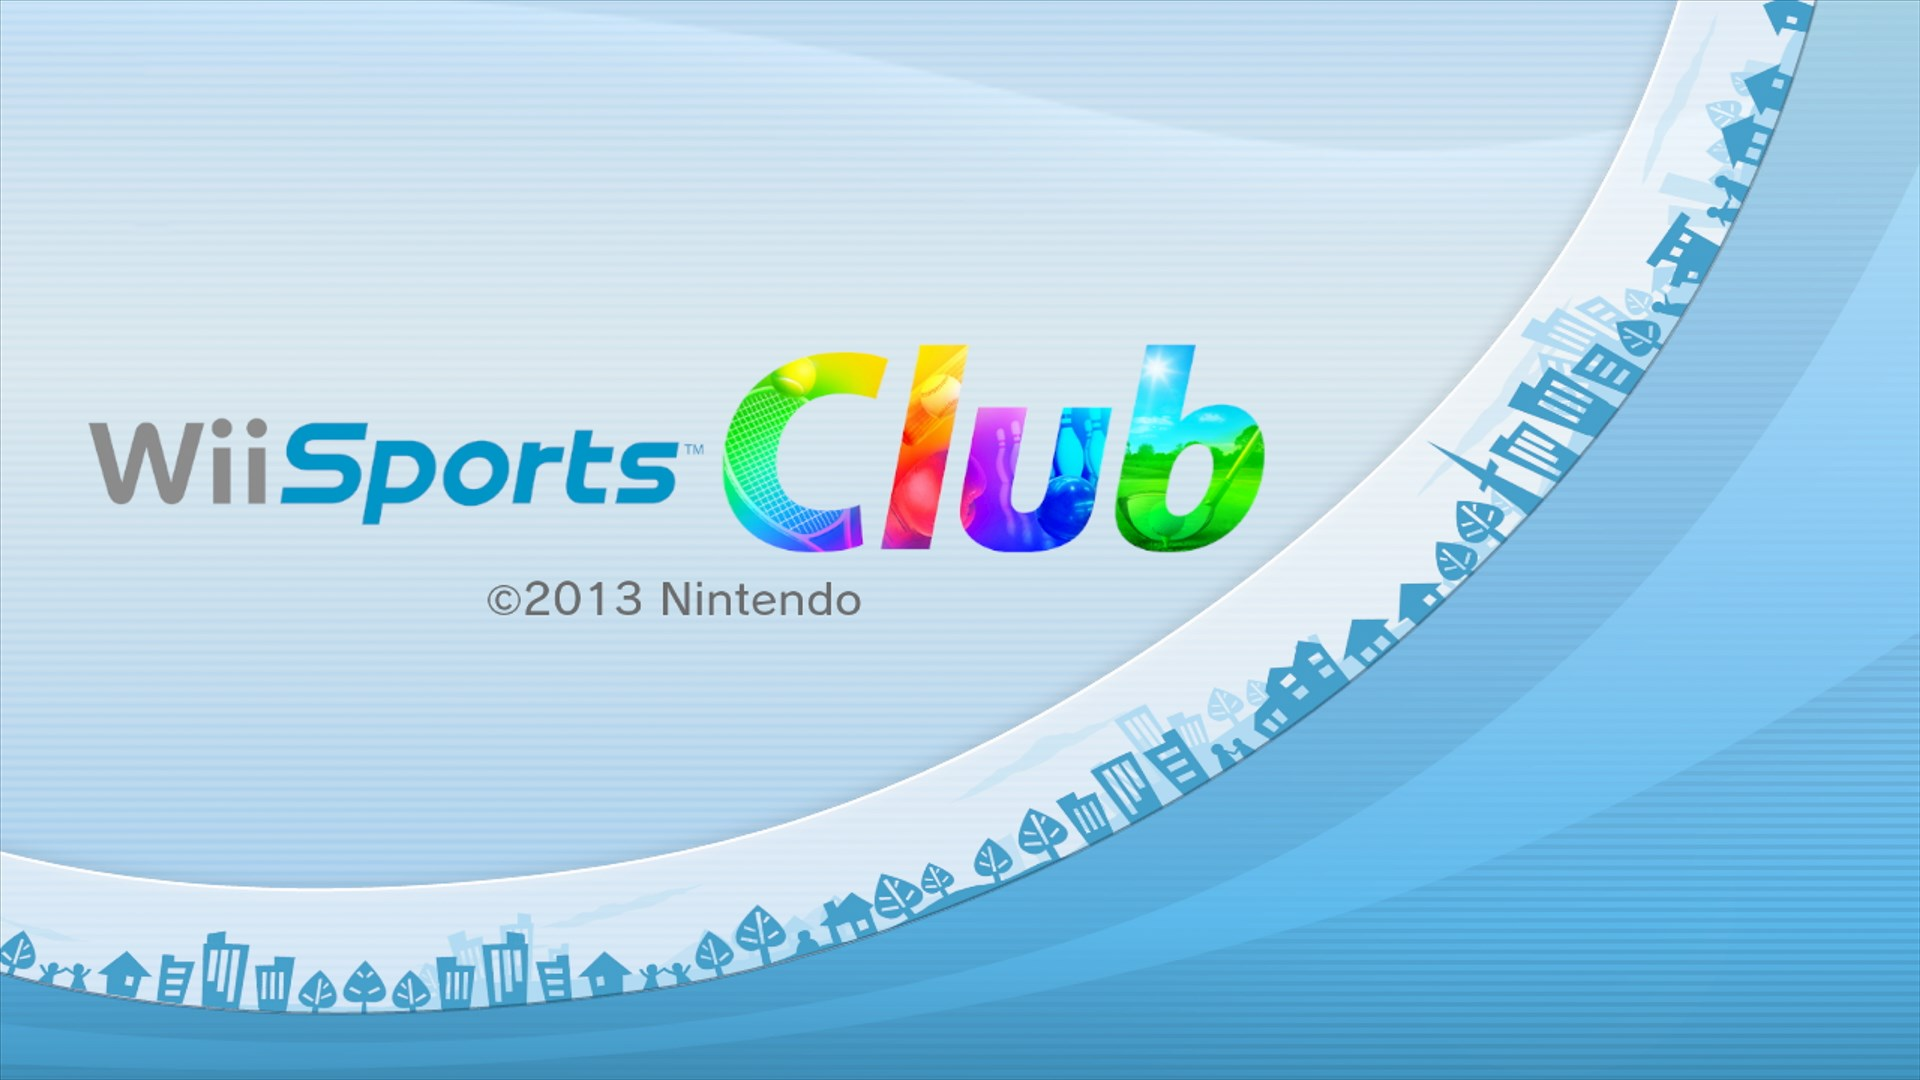 Nintendo PR: Five Sports, One Package: Wii Sports Club Launches in Stores on July 25